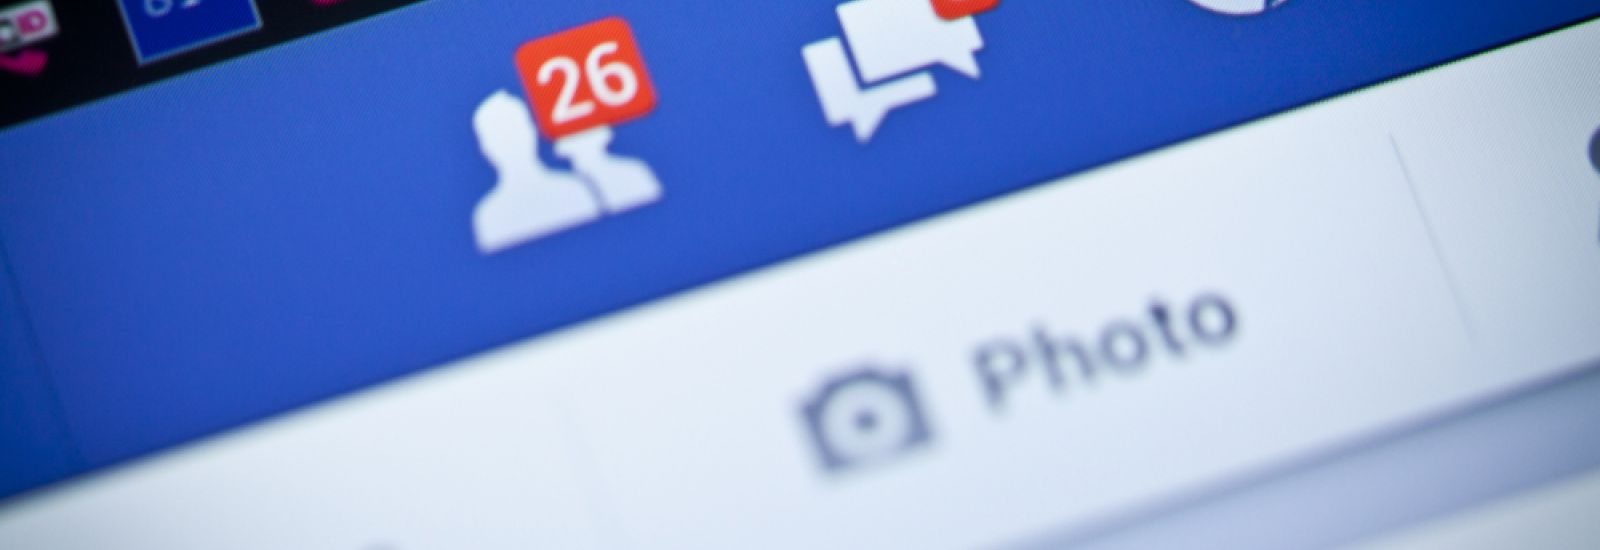 Facebook notifications of friend request ,message and notification on a smart phone. Facebook is a social networking service, owned and operated by Facebook, Inc.